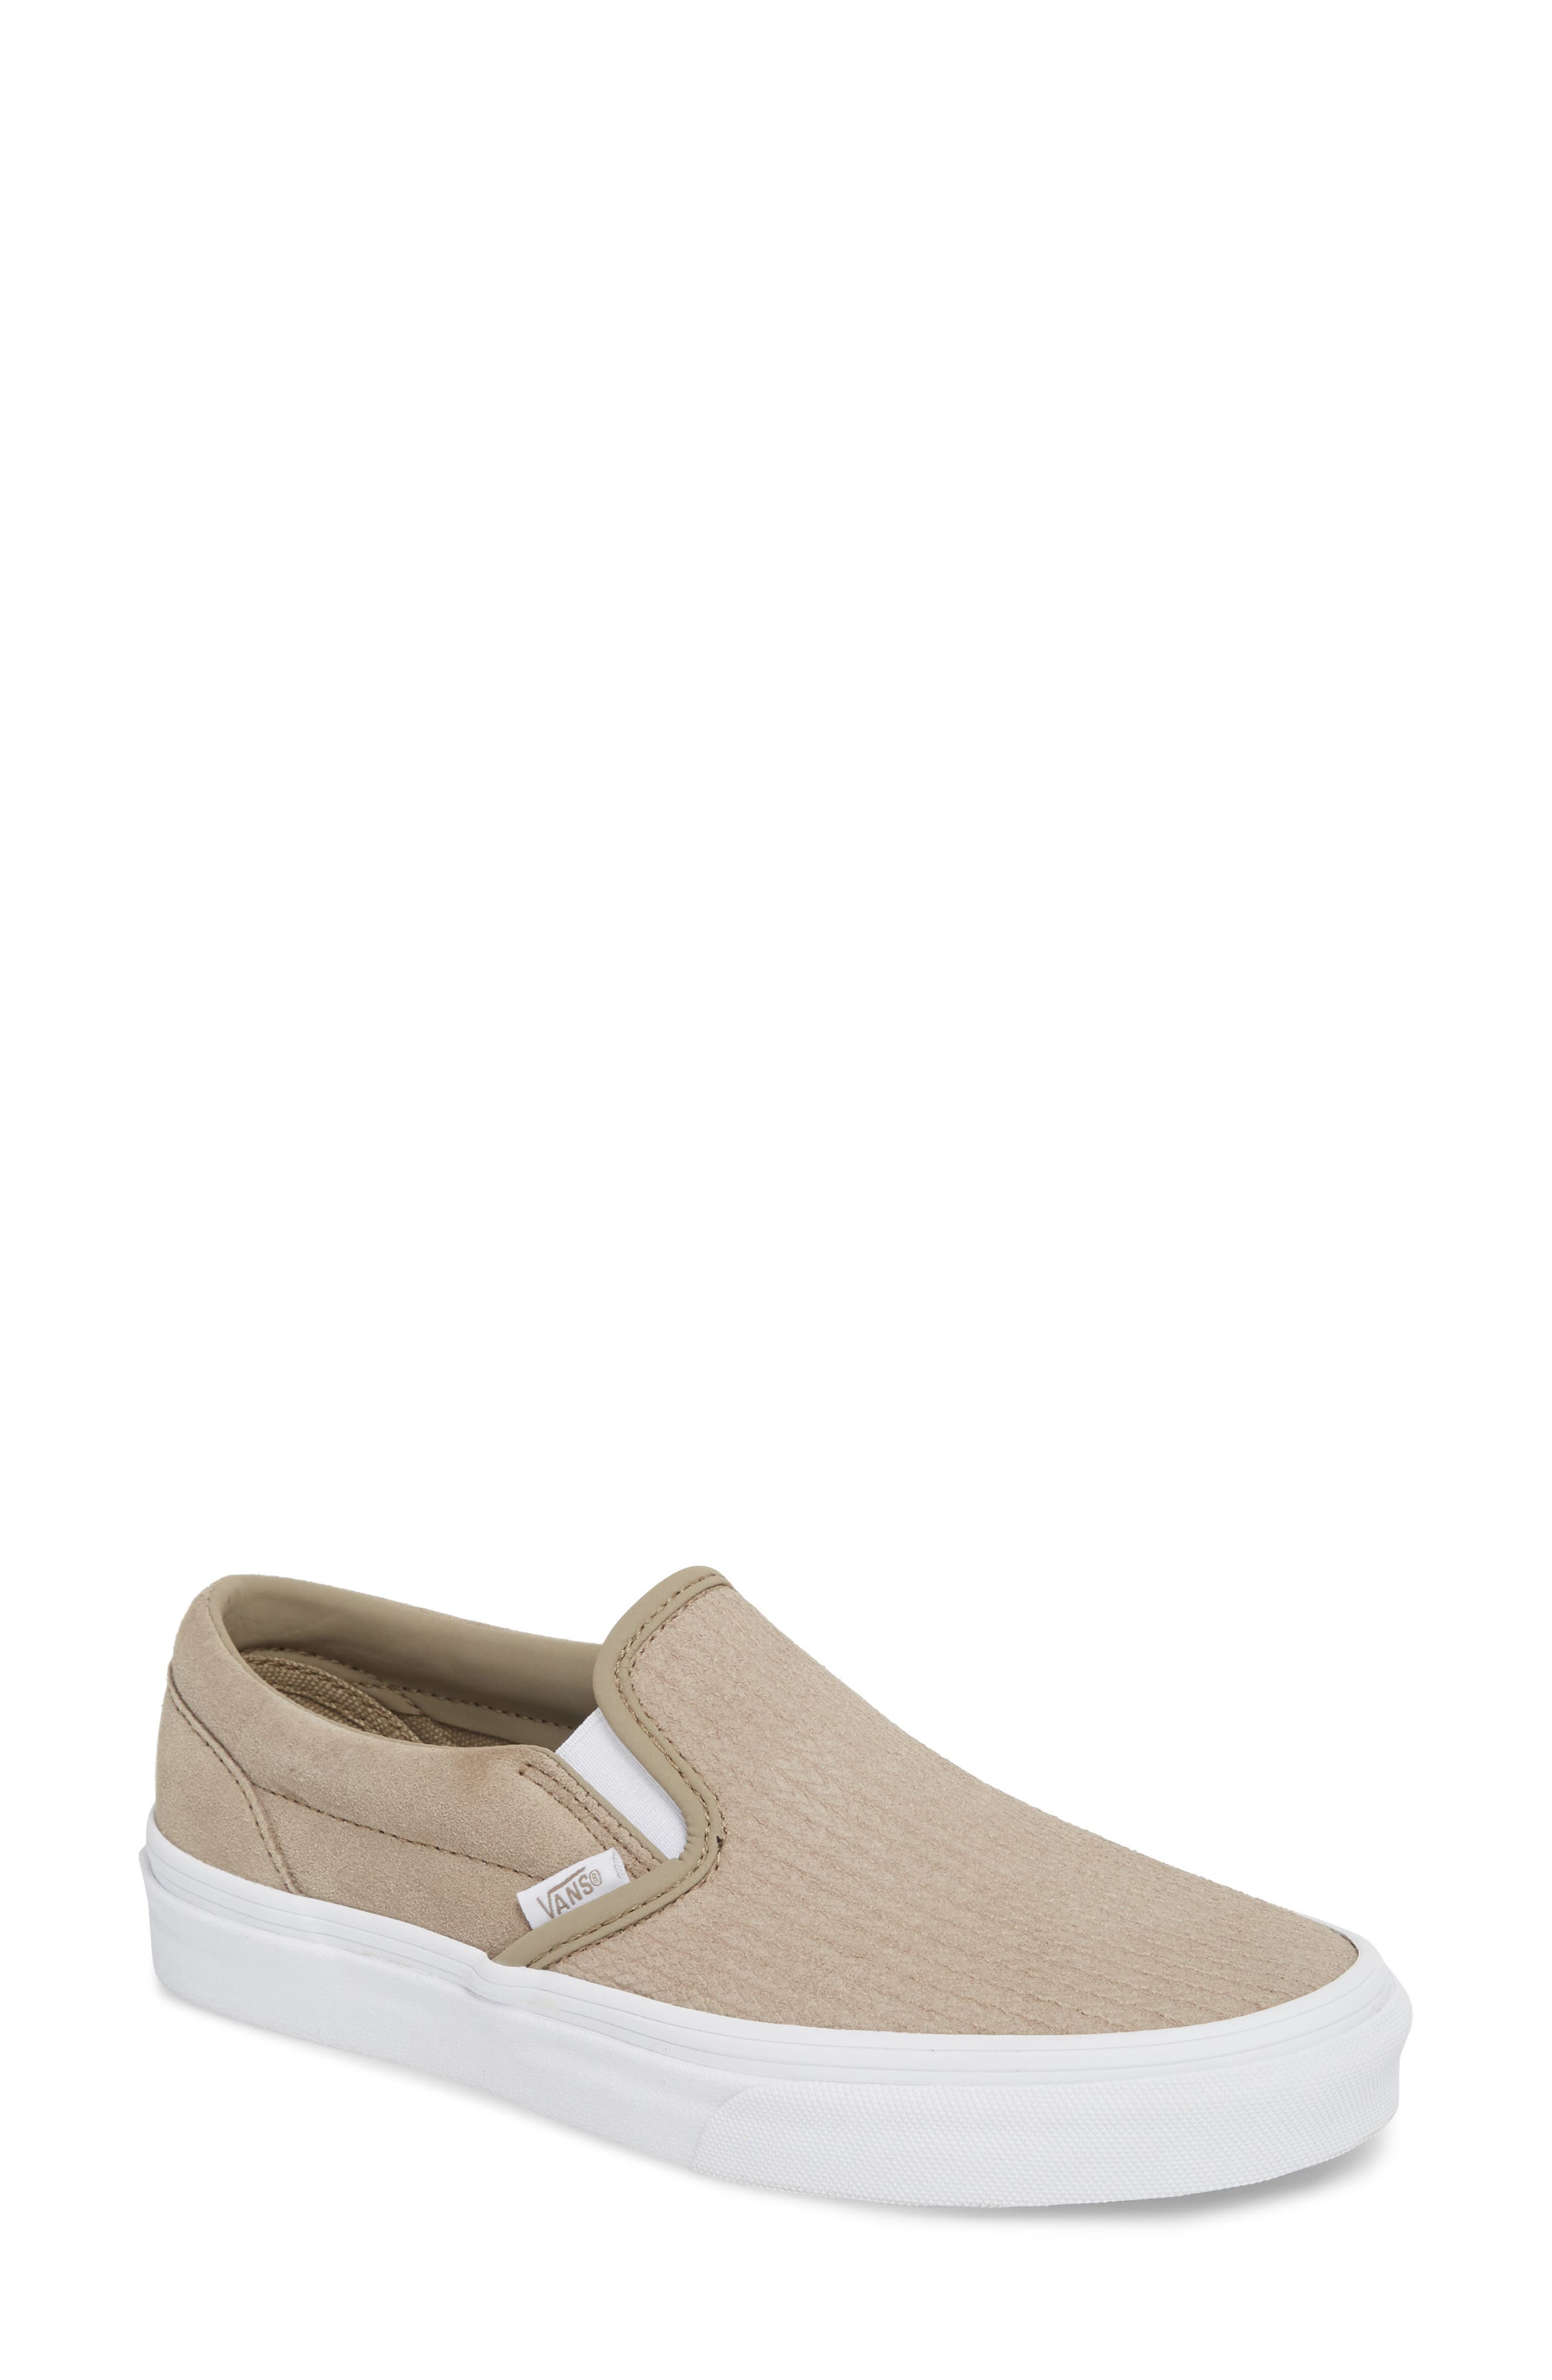 Classic Slip-On Sneaker,                         Main,                         color, Desert Taupe/ Emboss Suede